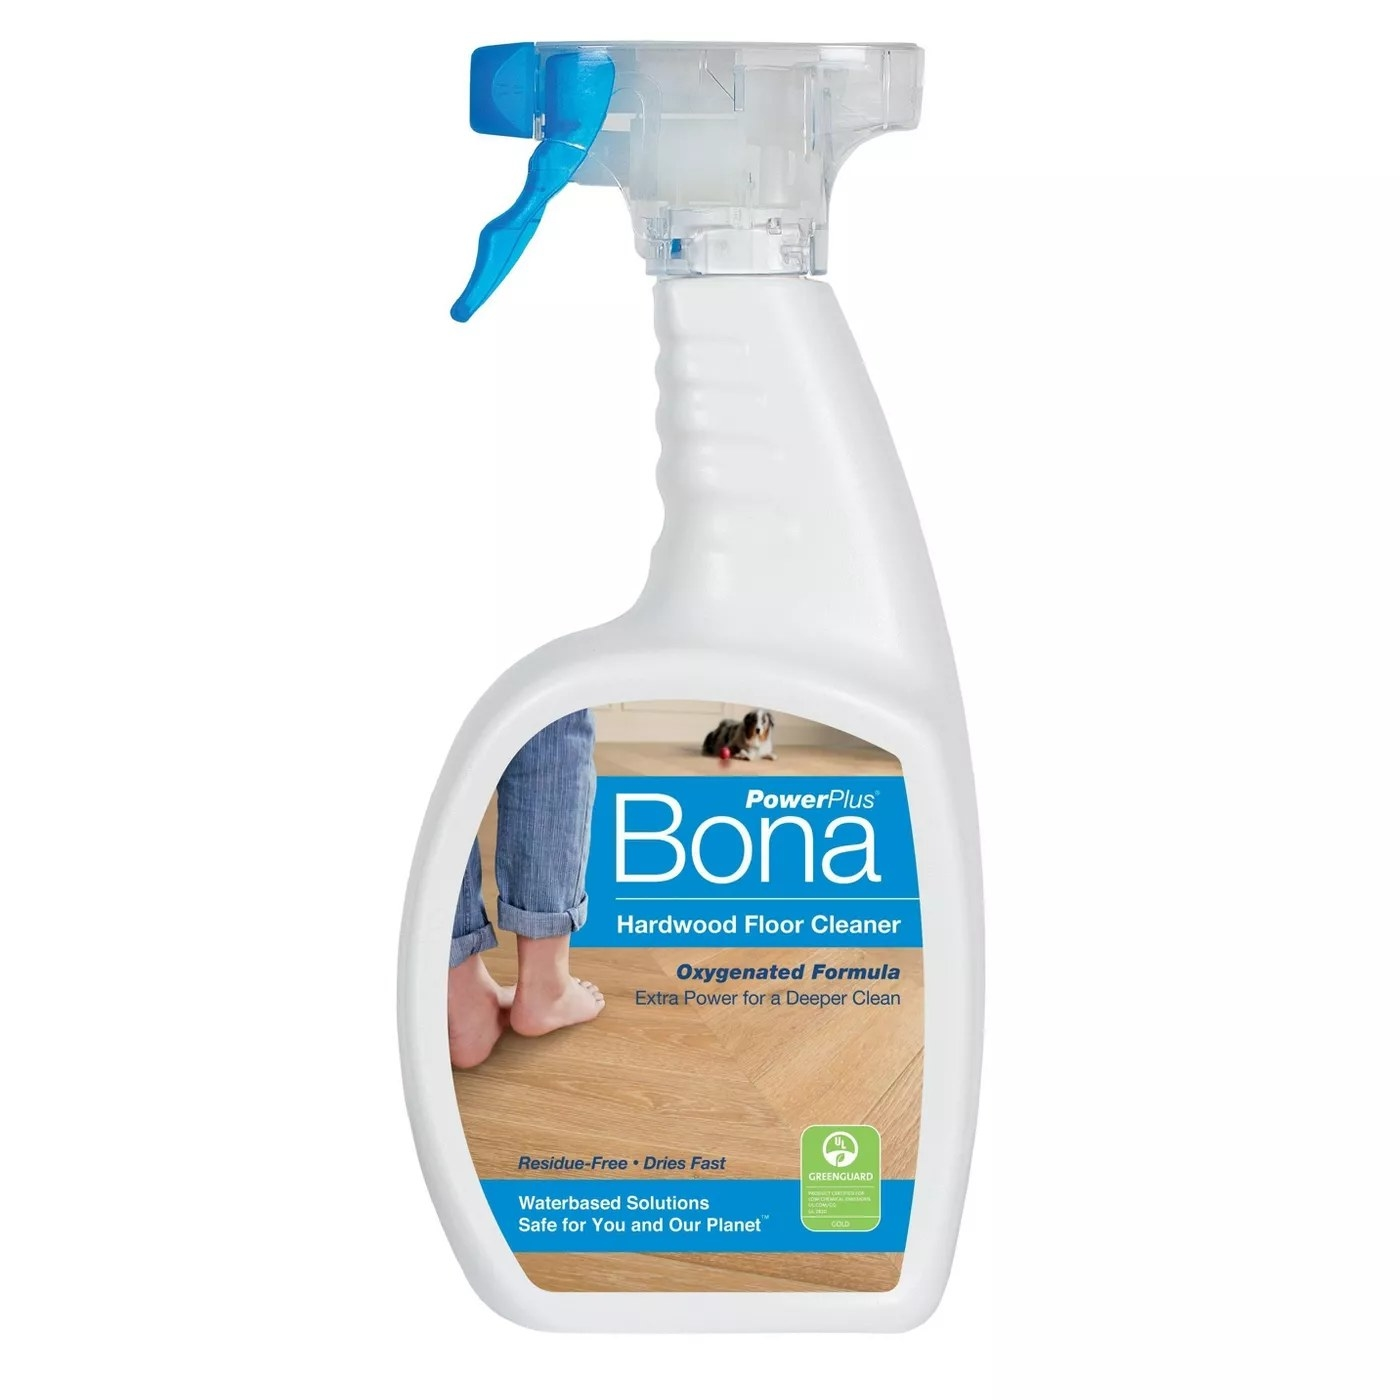 A bottle of Bona's PowerPlus hardwood floor cleaner that dries fast and doesn't leave a residue